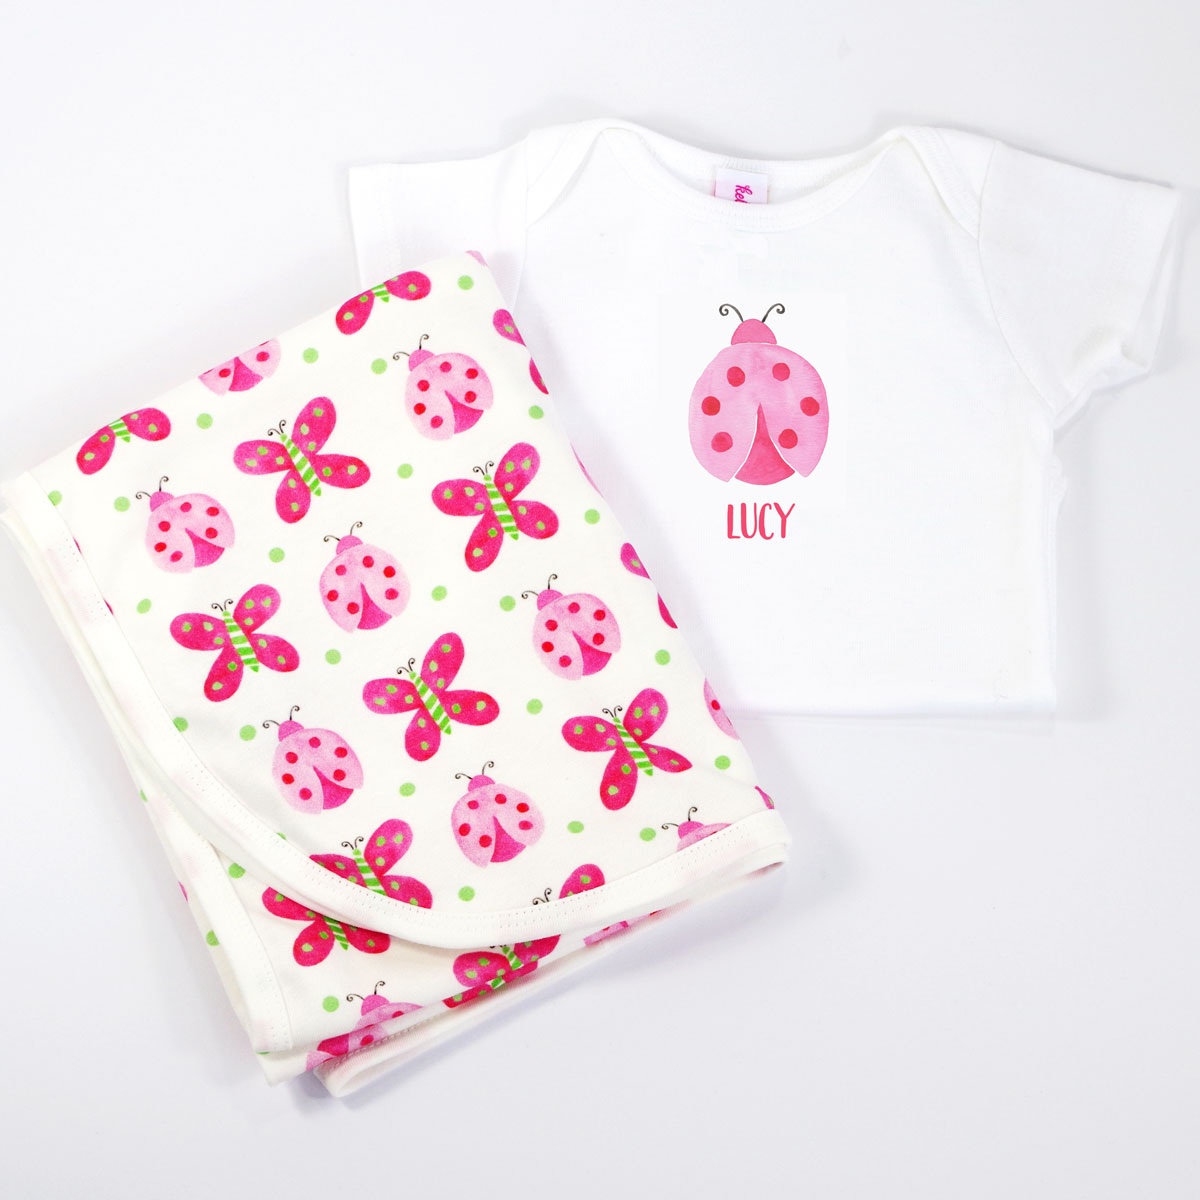 Ladybug Personalized Onesie and Coordinating Blanket for Baby